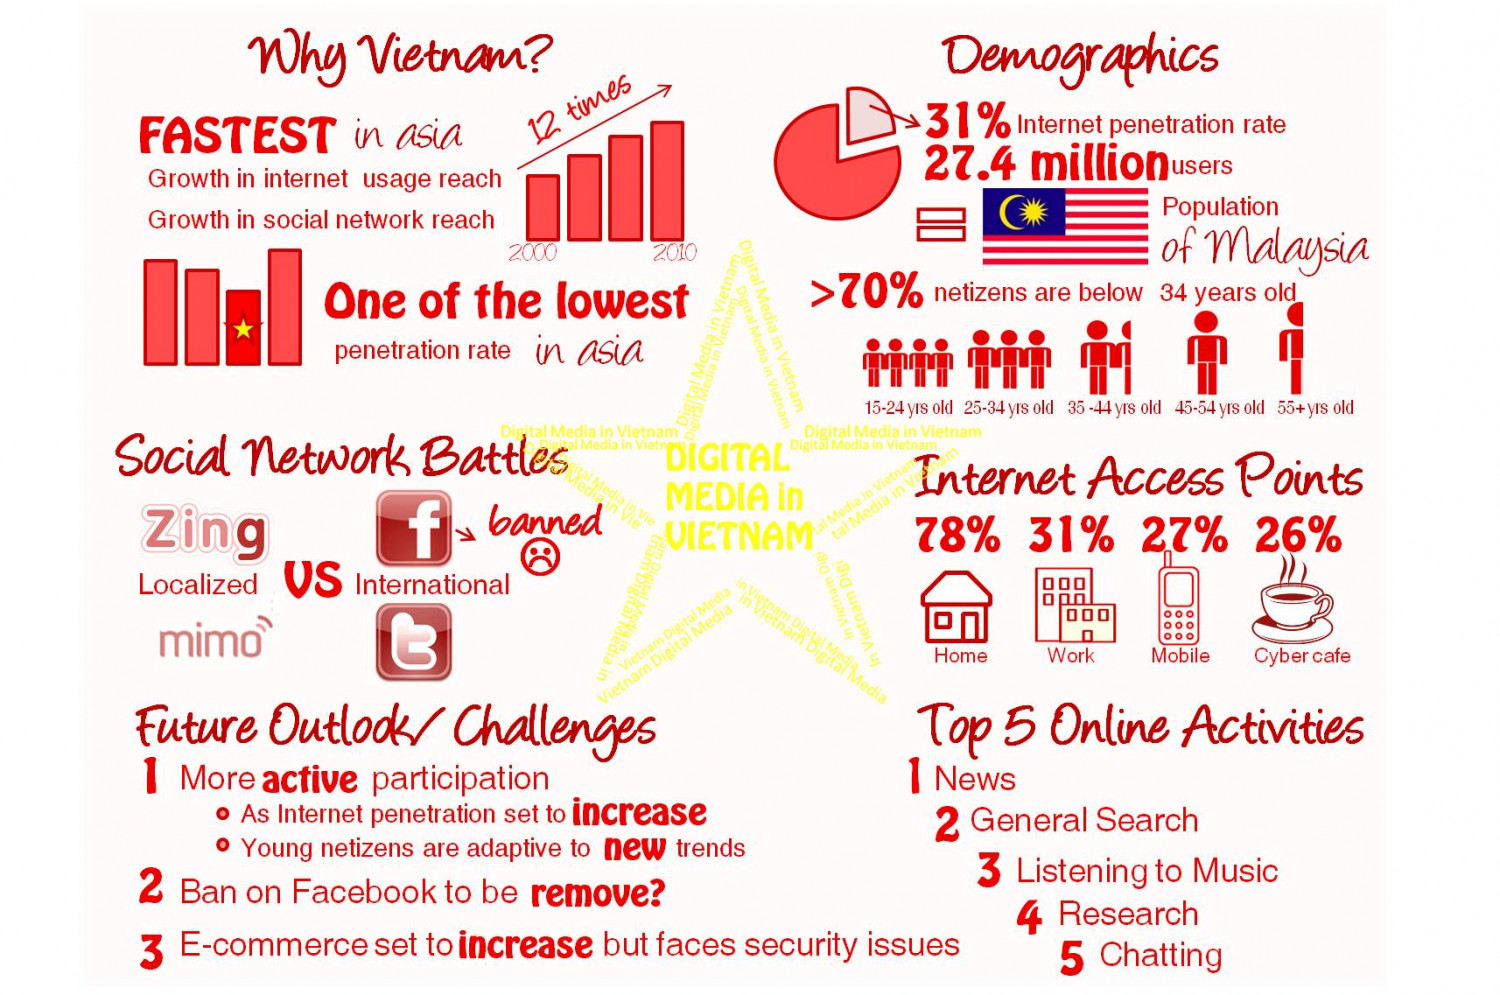 The Vietnamese Take on Social Media | Visual ly